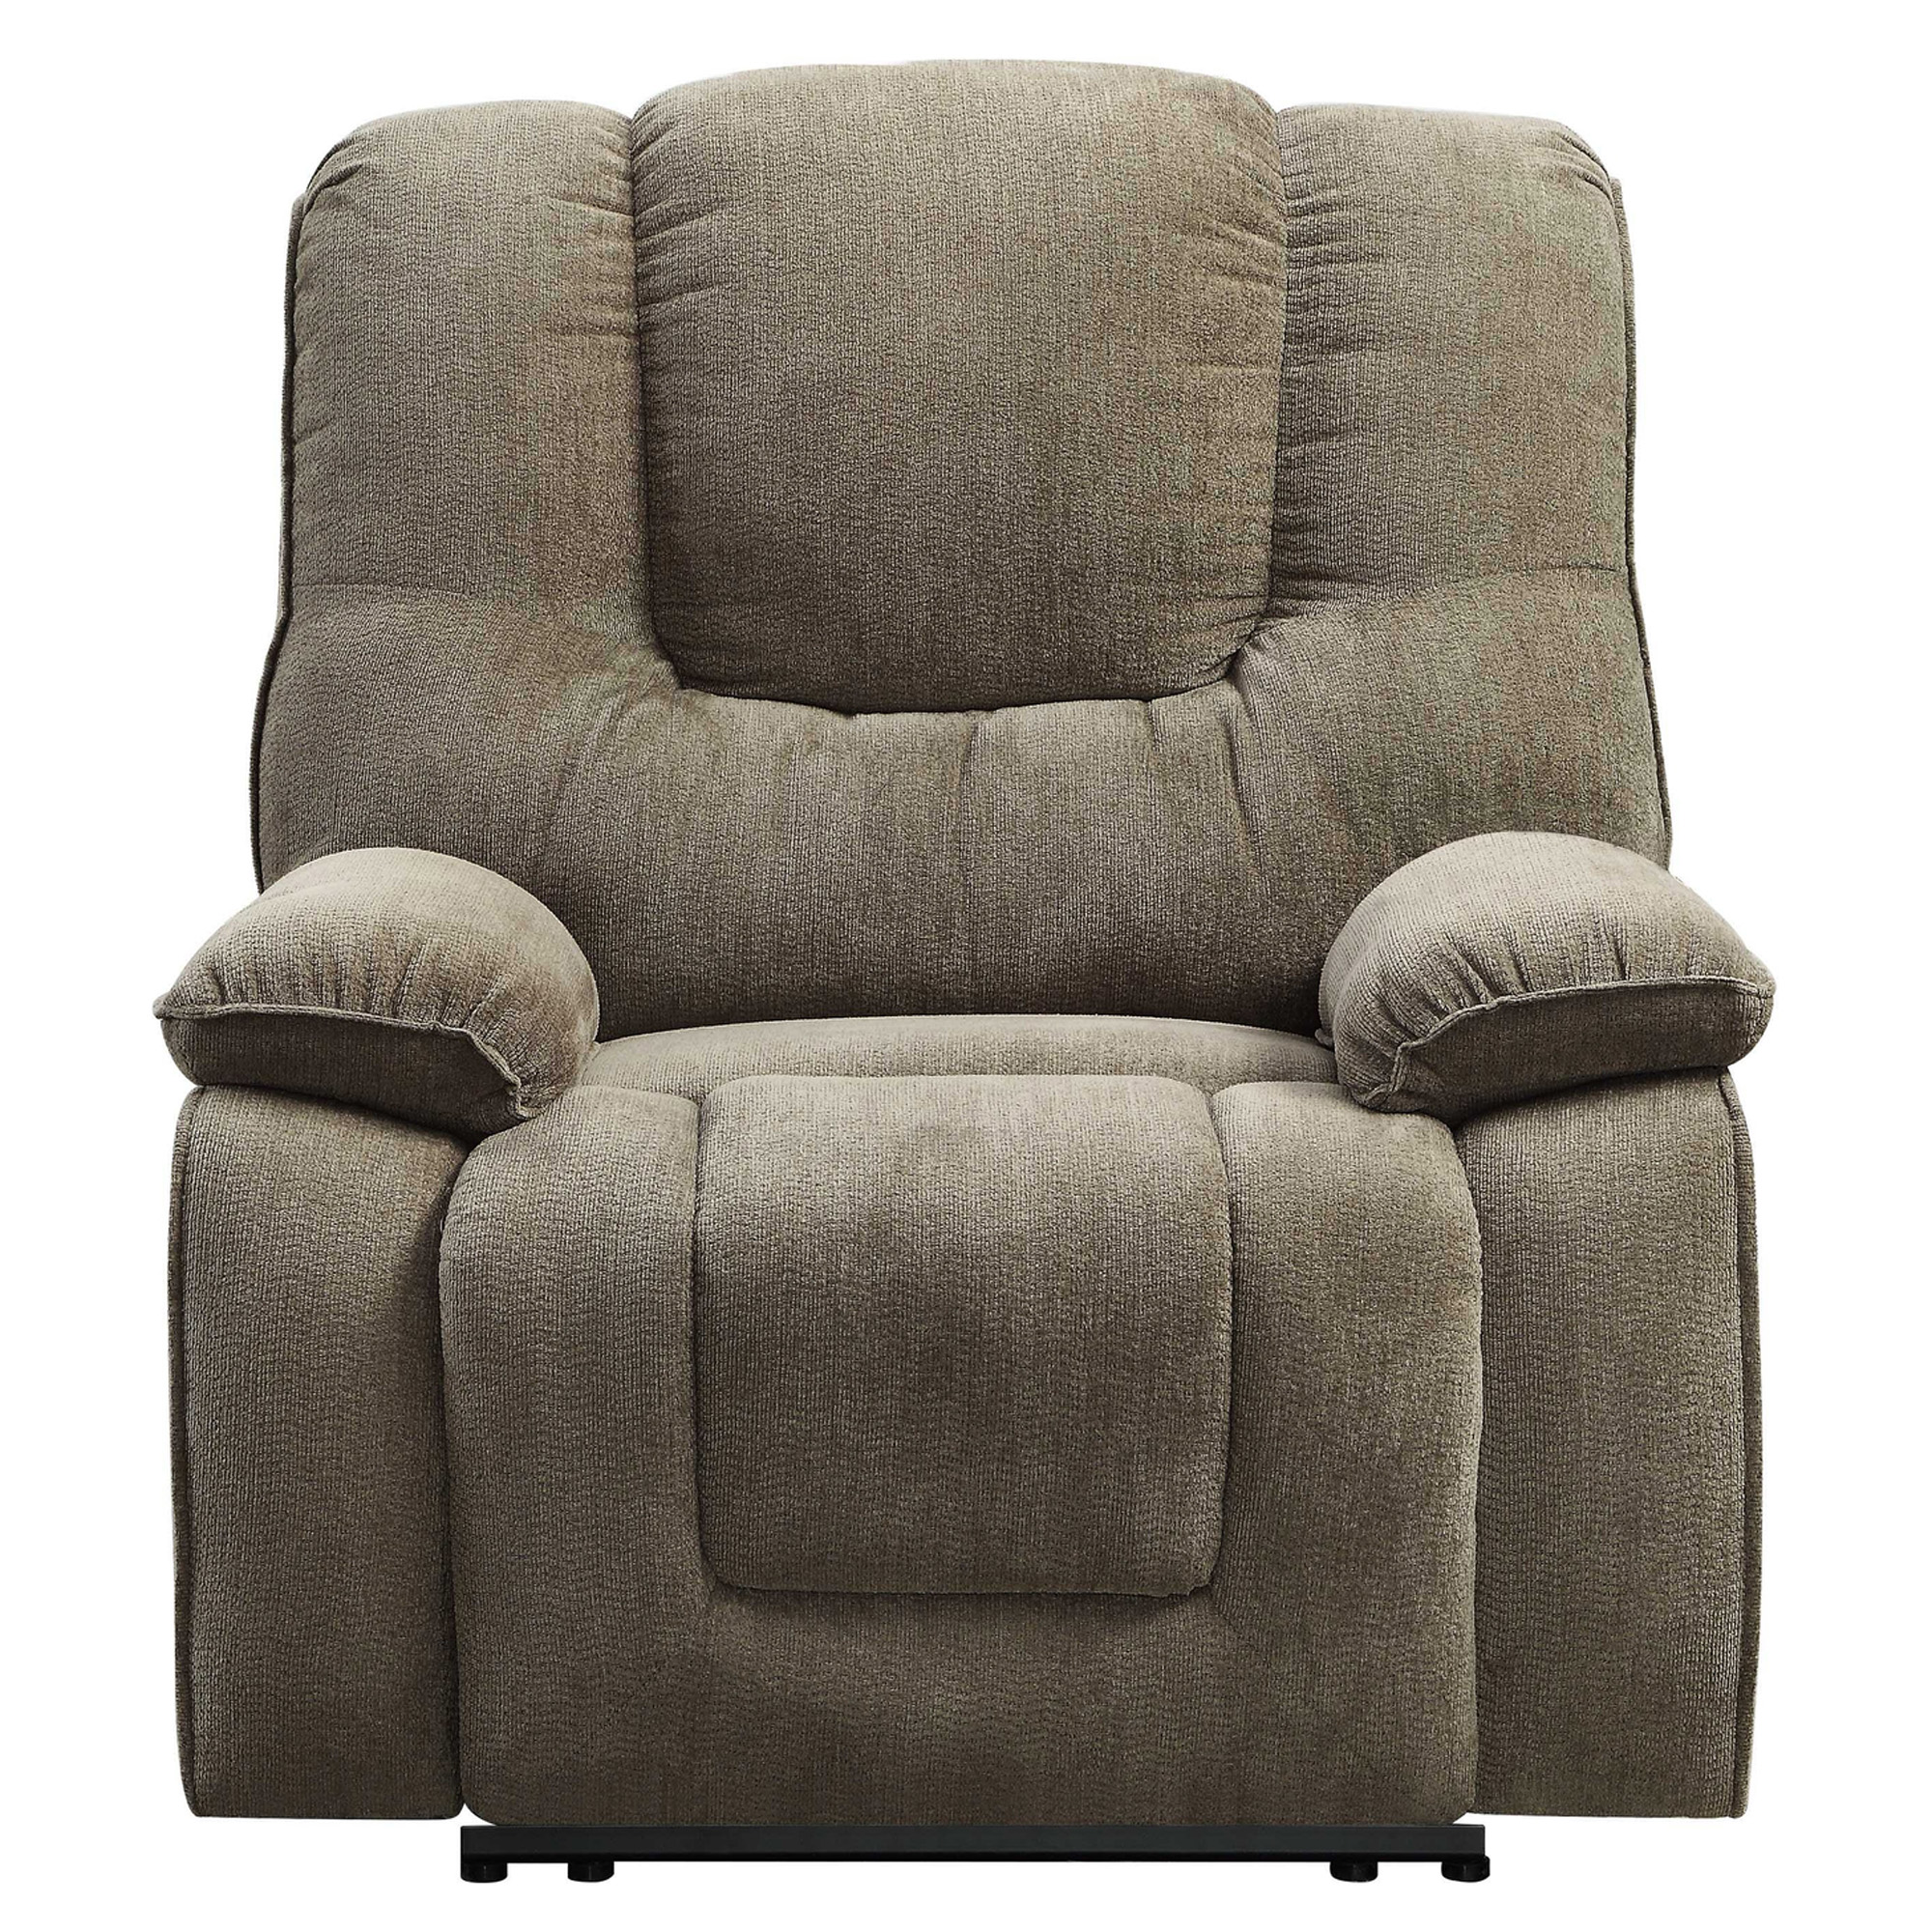 ... Better Homes and Gardens Big u0026 Tall Recliner with In-Arm Storage and USB ...  sc 1 st  Furniture HQ & Better Homes and Gardens Big u0026 Tall Recliner with In-Arm Storage ... islam-shia.org